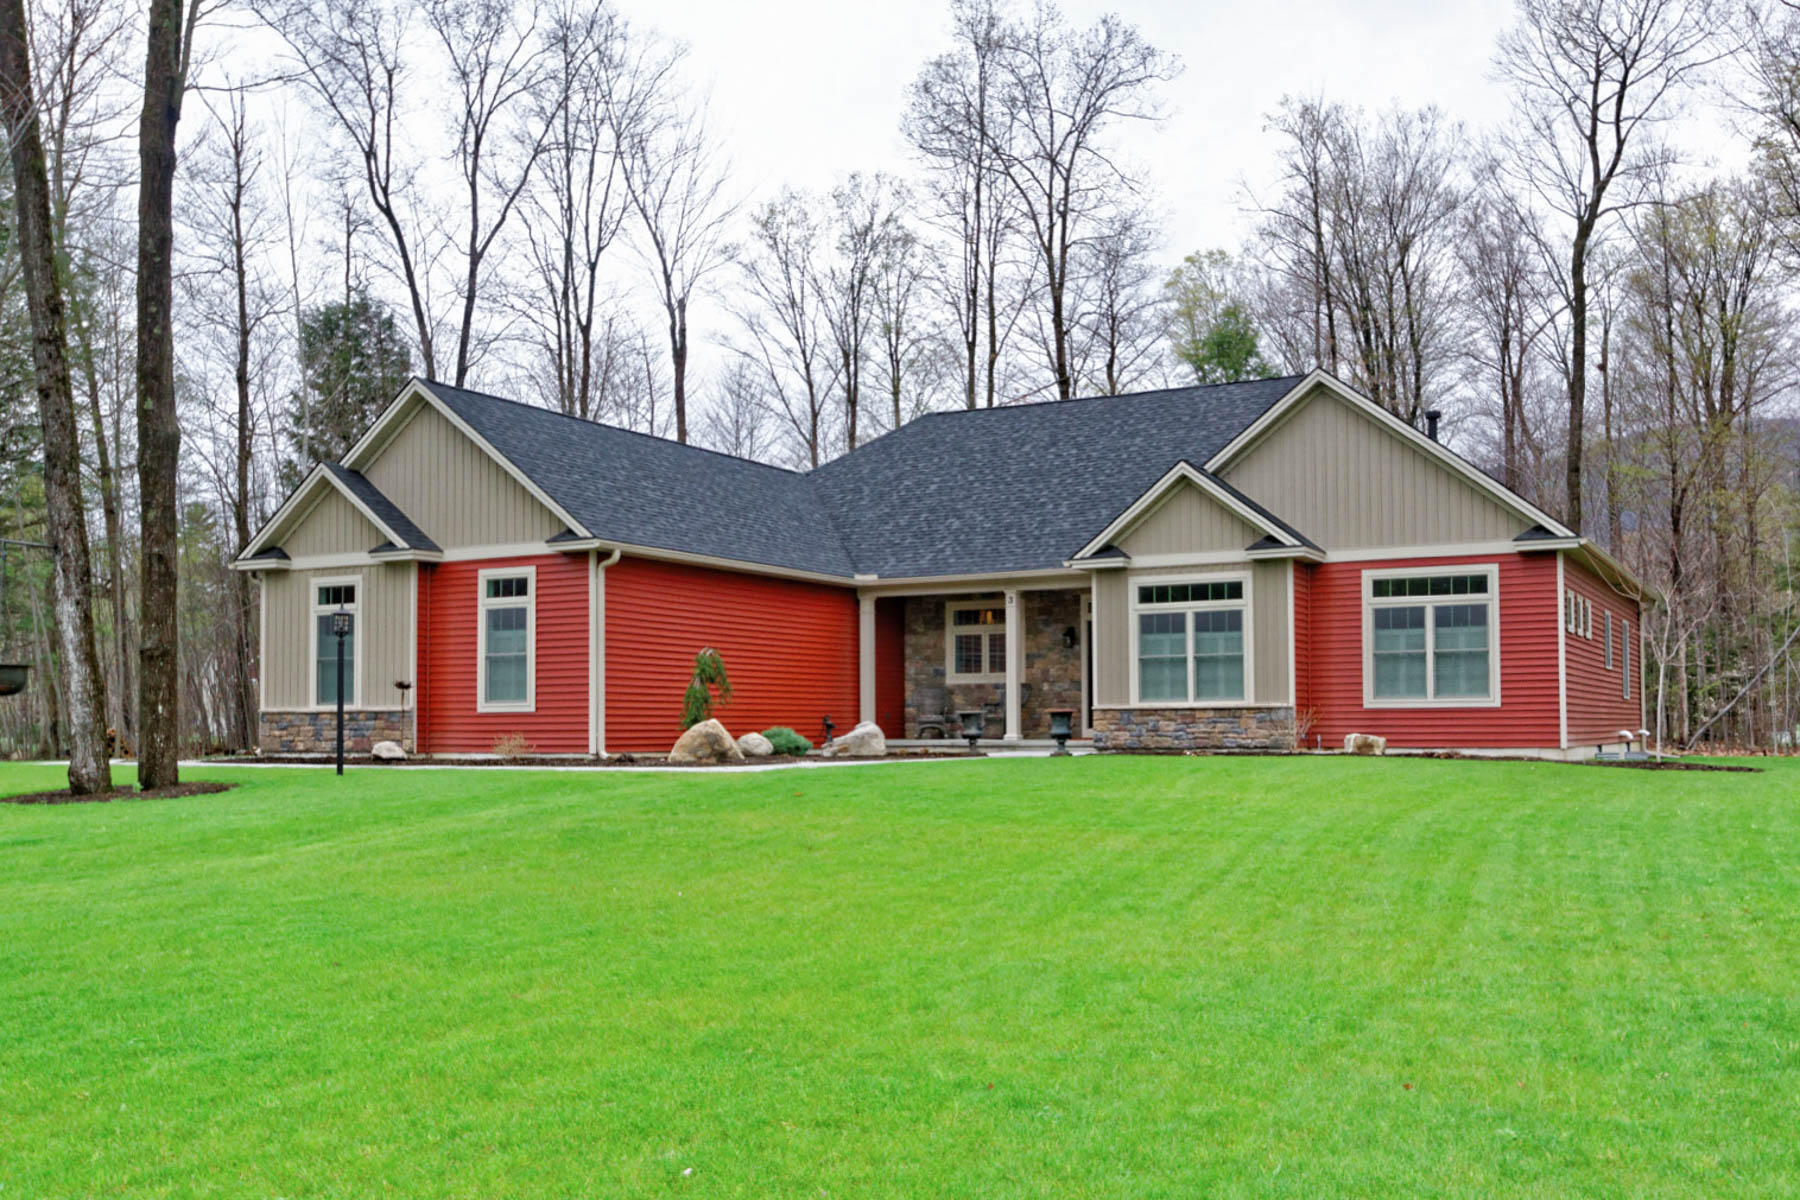 Single Family Home for Sale at Build Your Dream Home in Schuyler Hills! Lot 27 Schuyler Hills Dr, Saratoga Springs, New York, 12866 United States